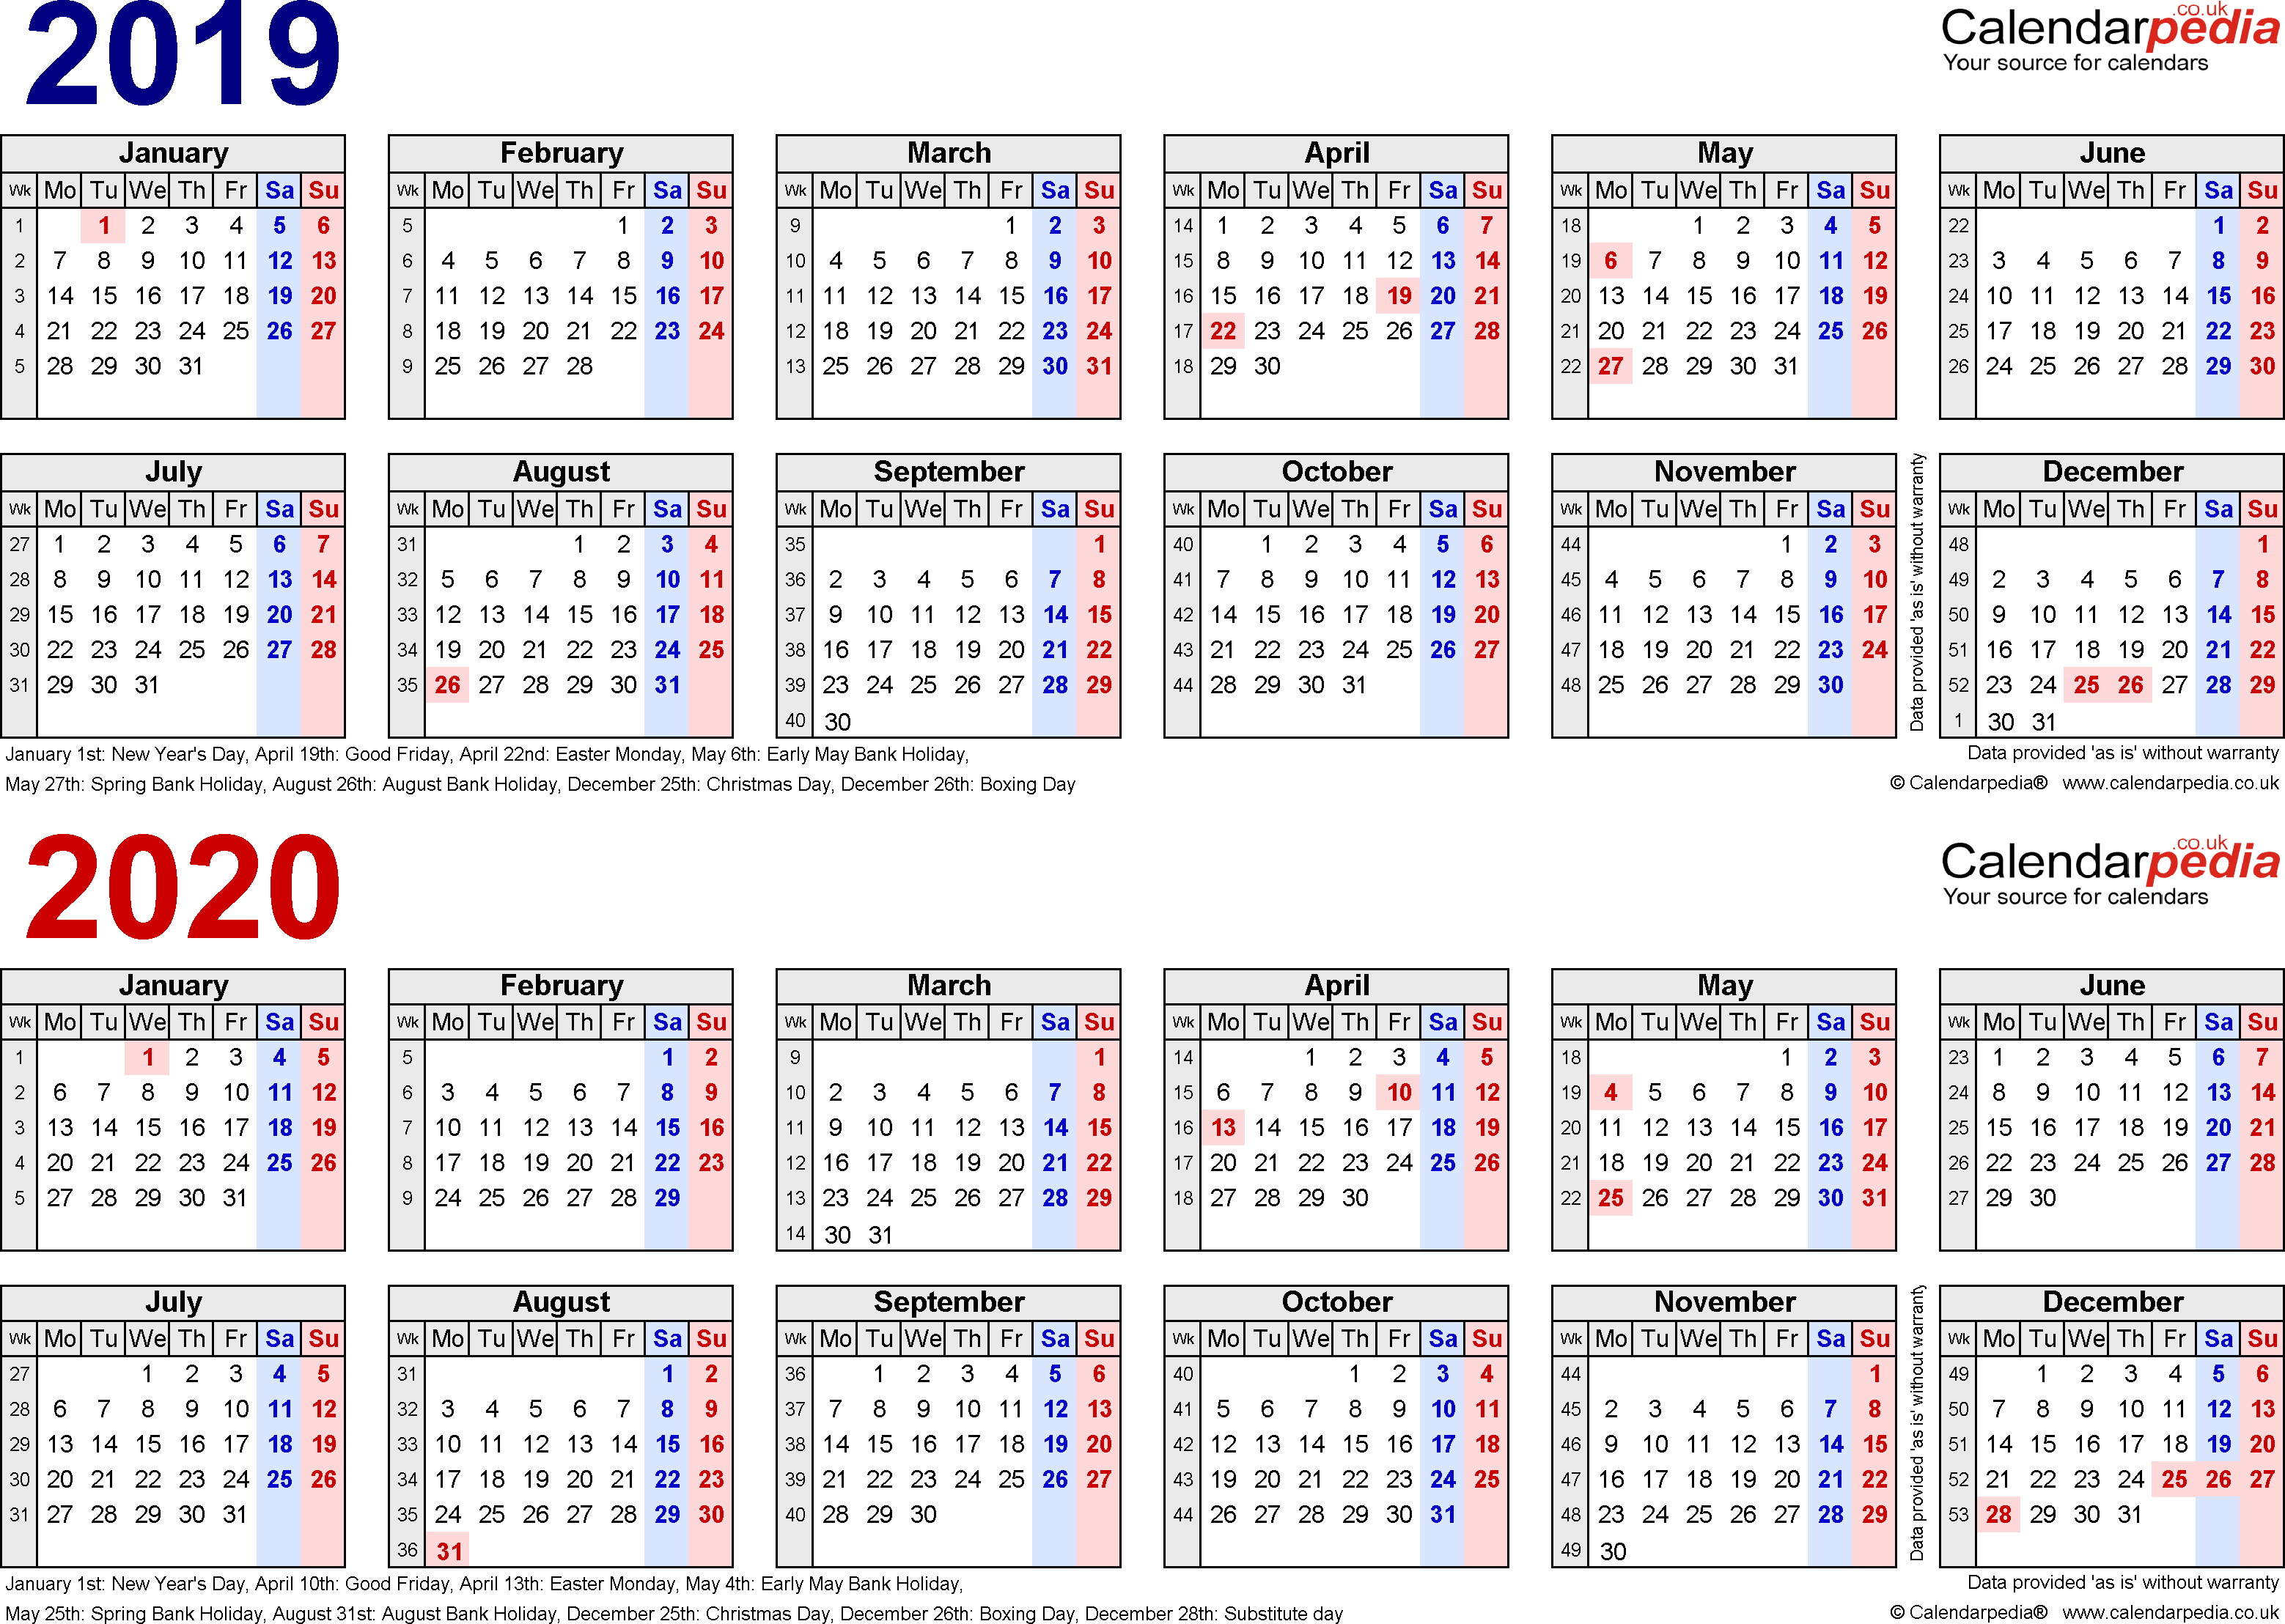 Template 1: Word template for two year calendar 2019/2020 in blue/red (landscape orientation, 1 page, A4)